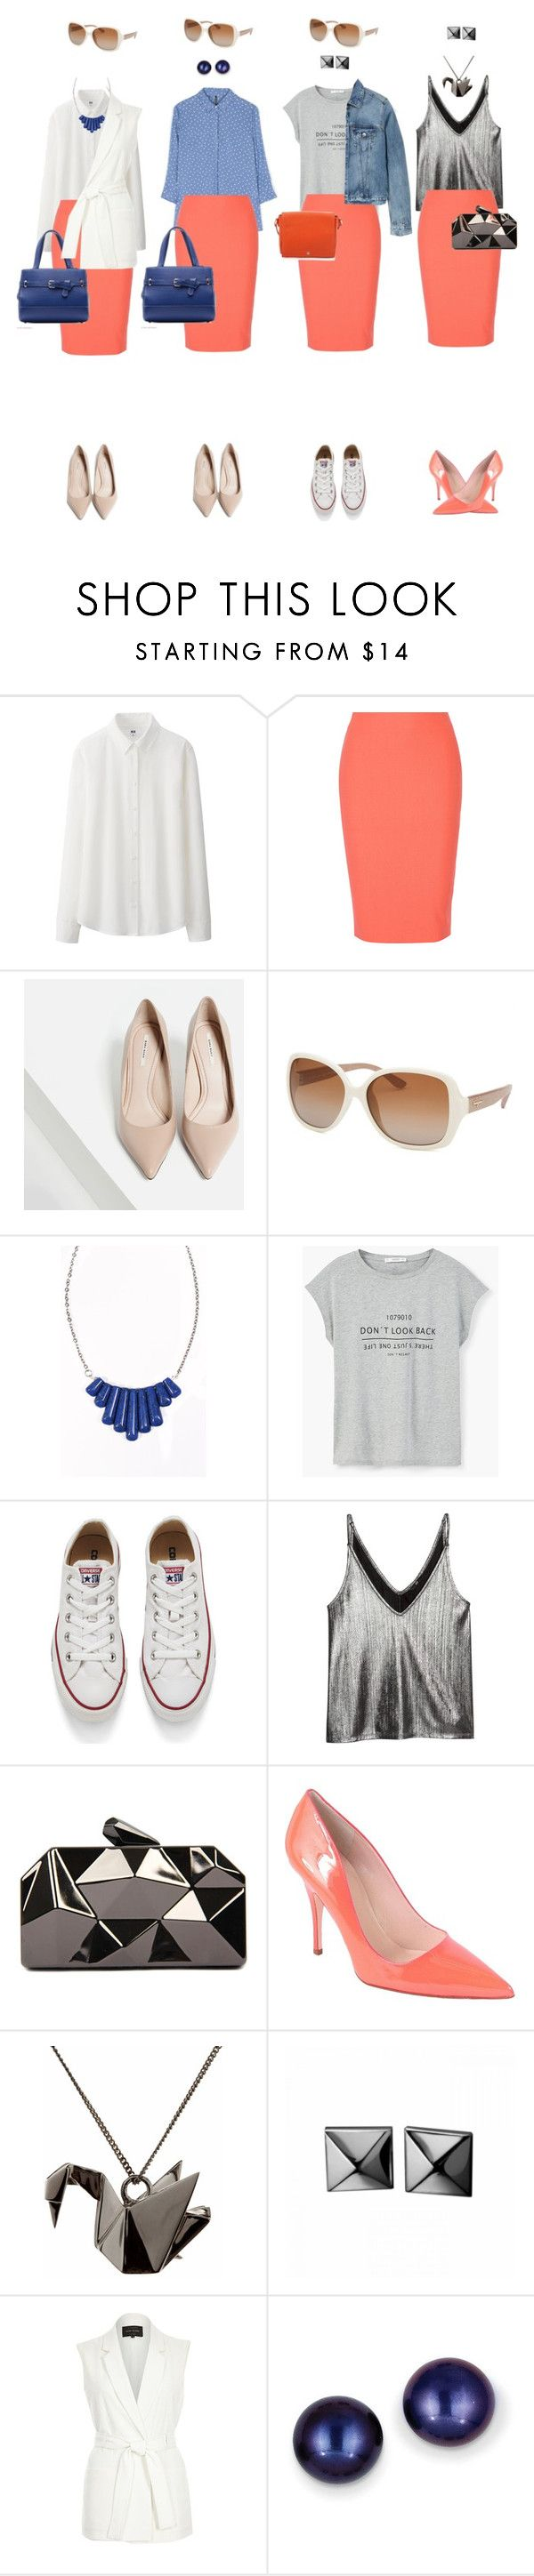 """Coral pencil skirt"" by rara-nataliya ❤ liked on Polyvore featuring Uniqlo, Elizabeth and James, Zara, Salvatore Ferragamo, Heroldian Jewellery, MANGO, Converse, H&M, WithChic and Kate Spade"